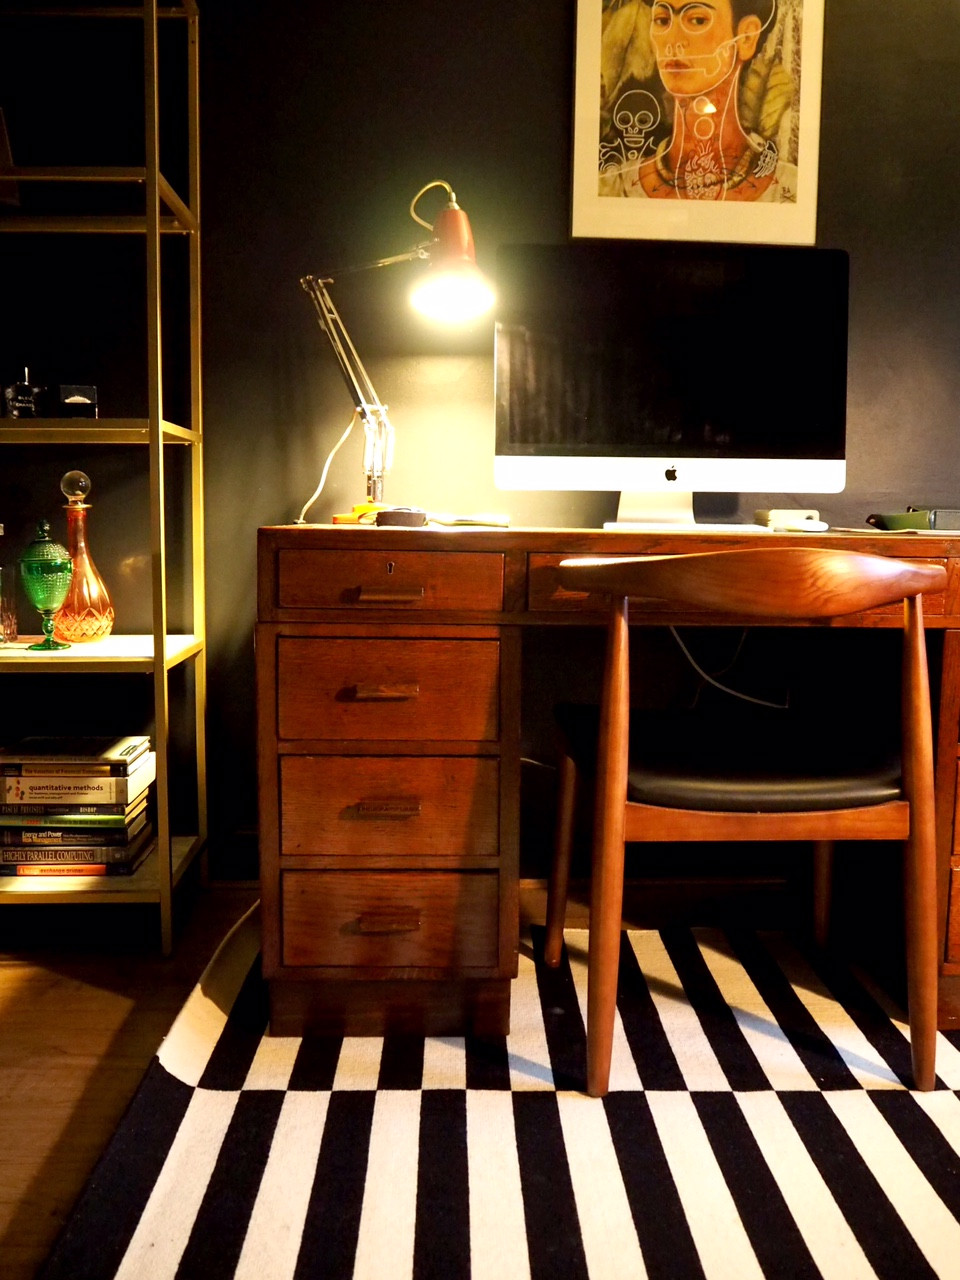 Farrow and Ball Railings wall, mid century desk and chair, red anglepoise lamp and wall art